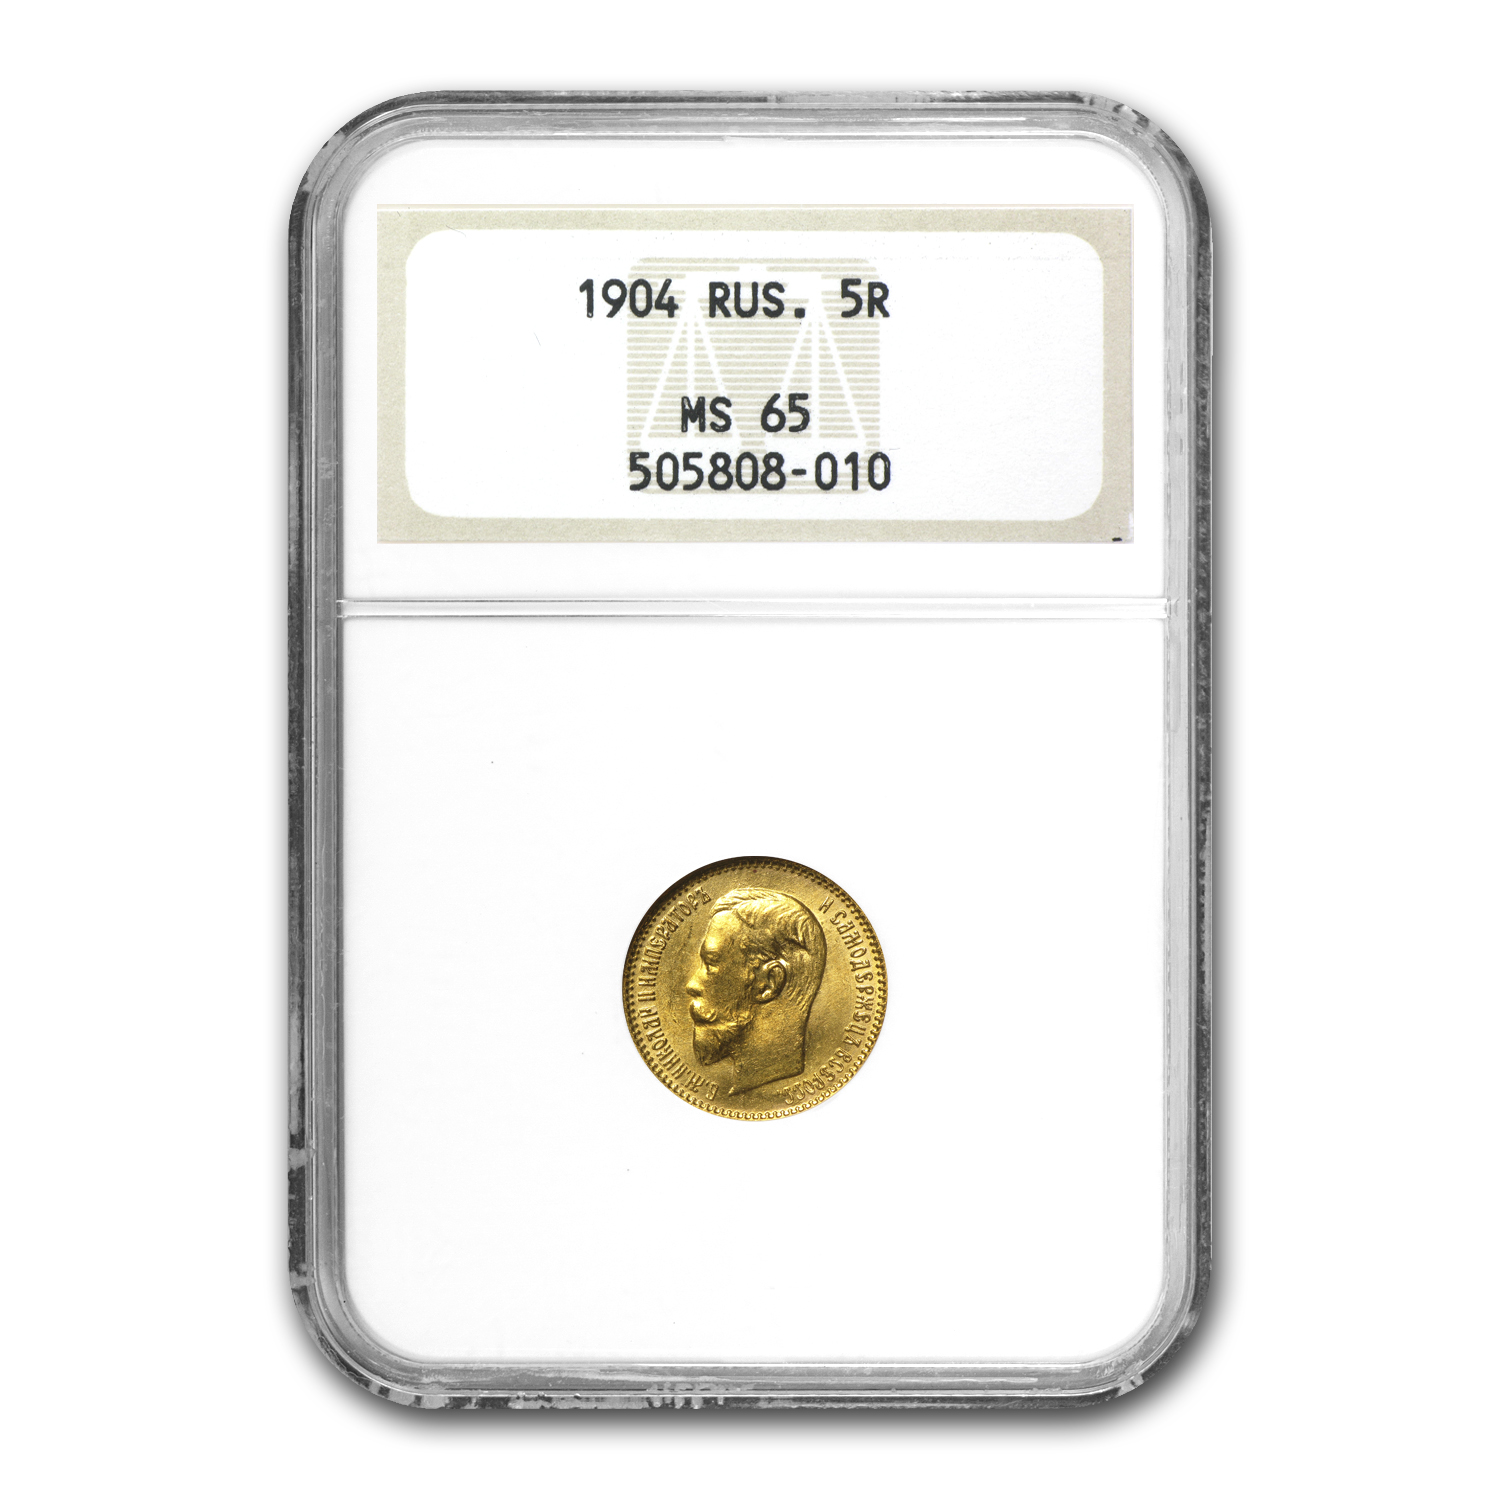 1904 Russia Gold 5 Roubles Nicholas II MS-65 NGC